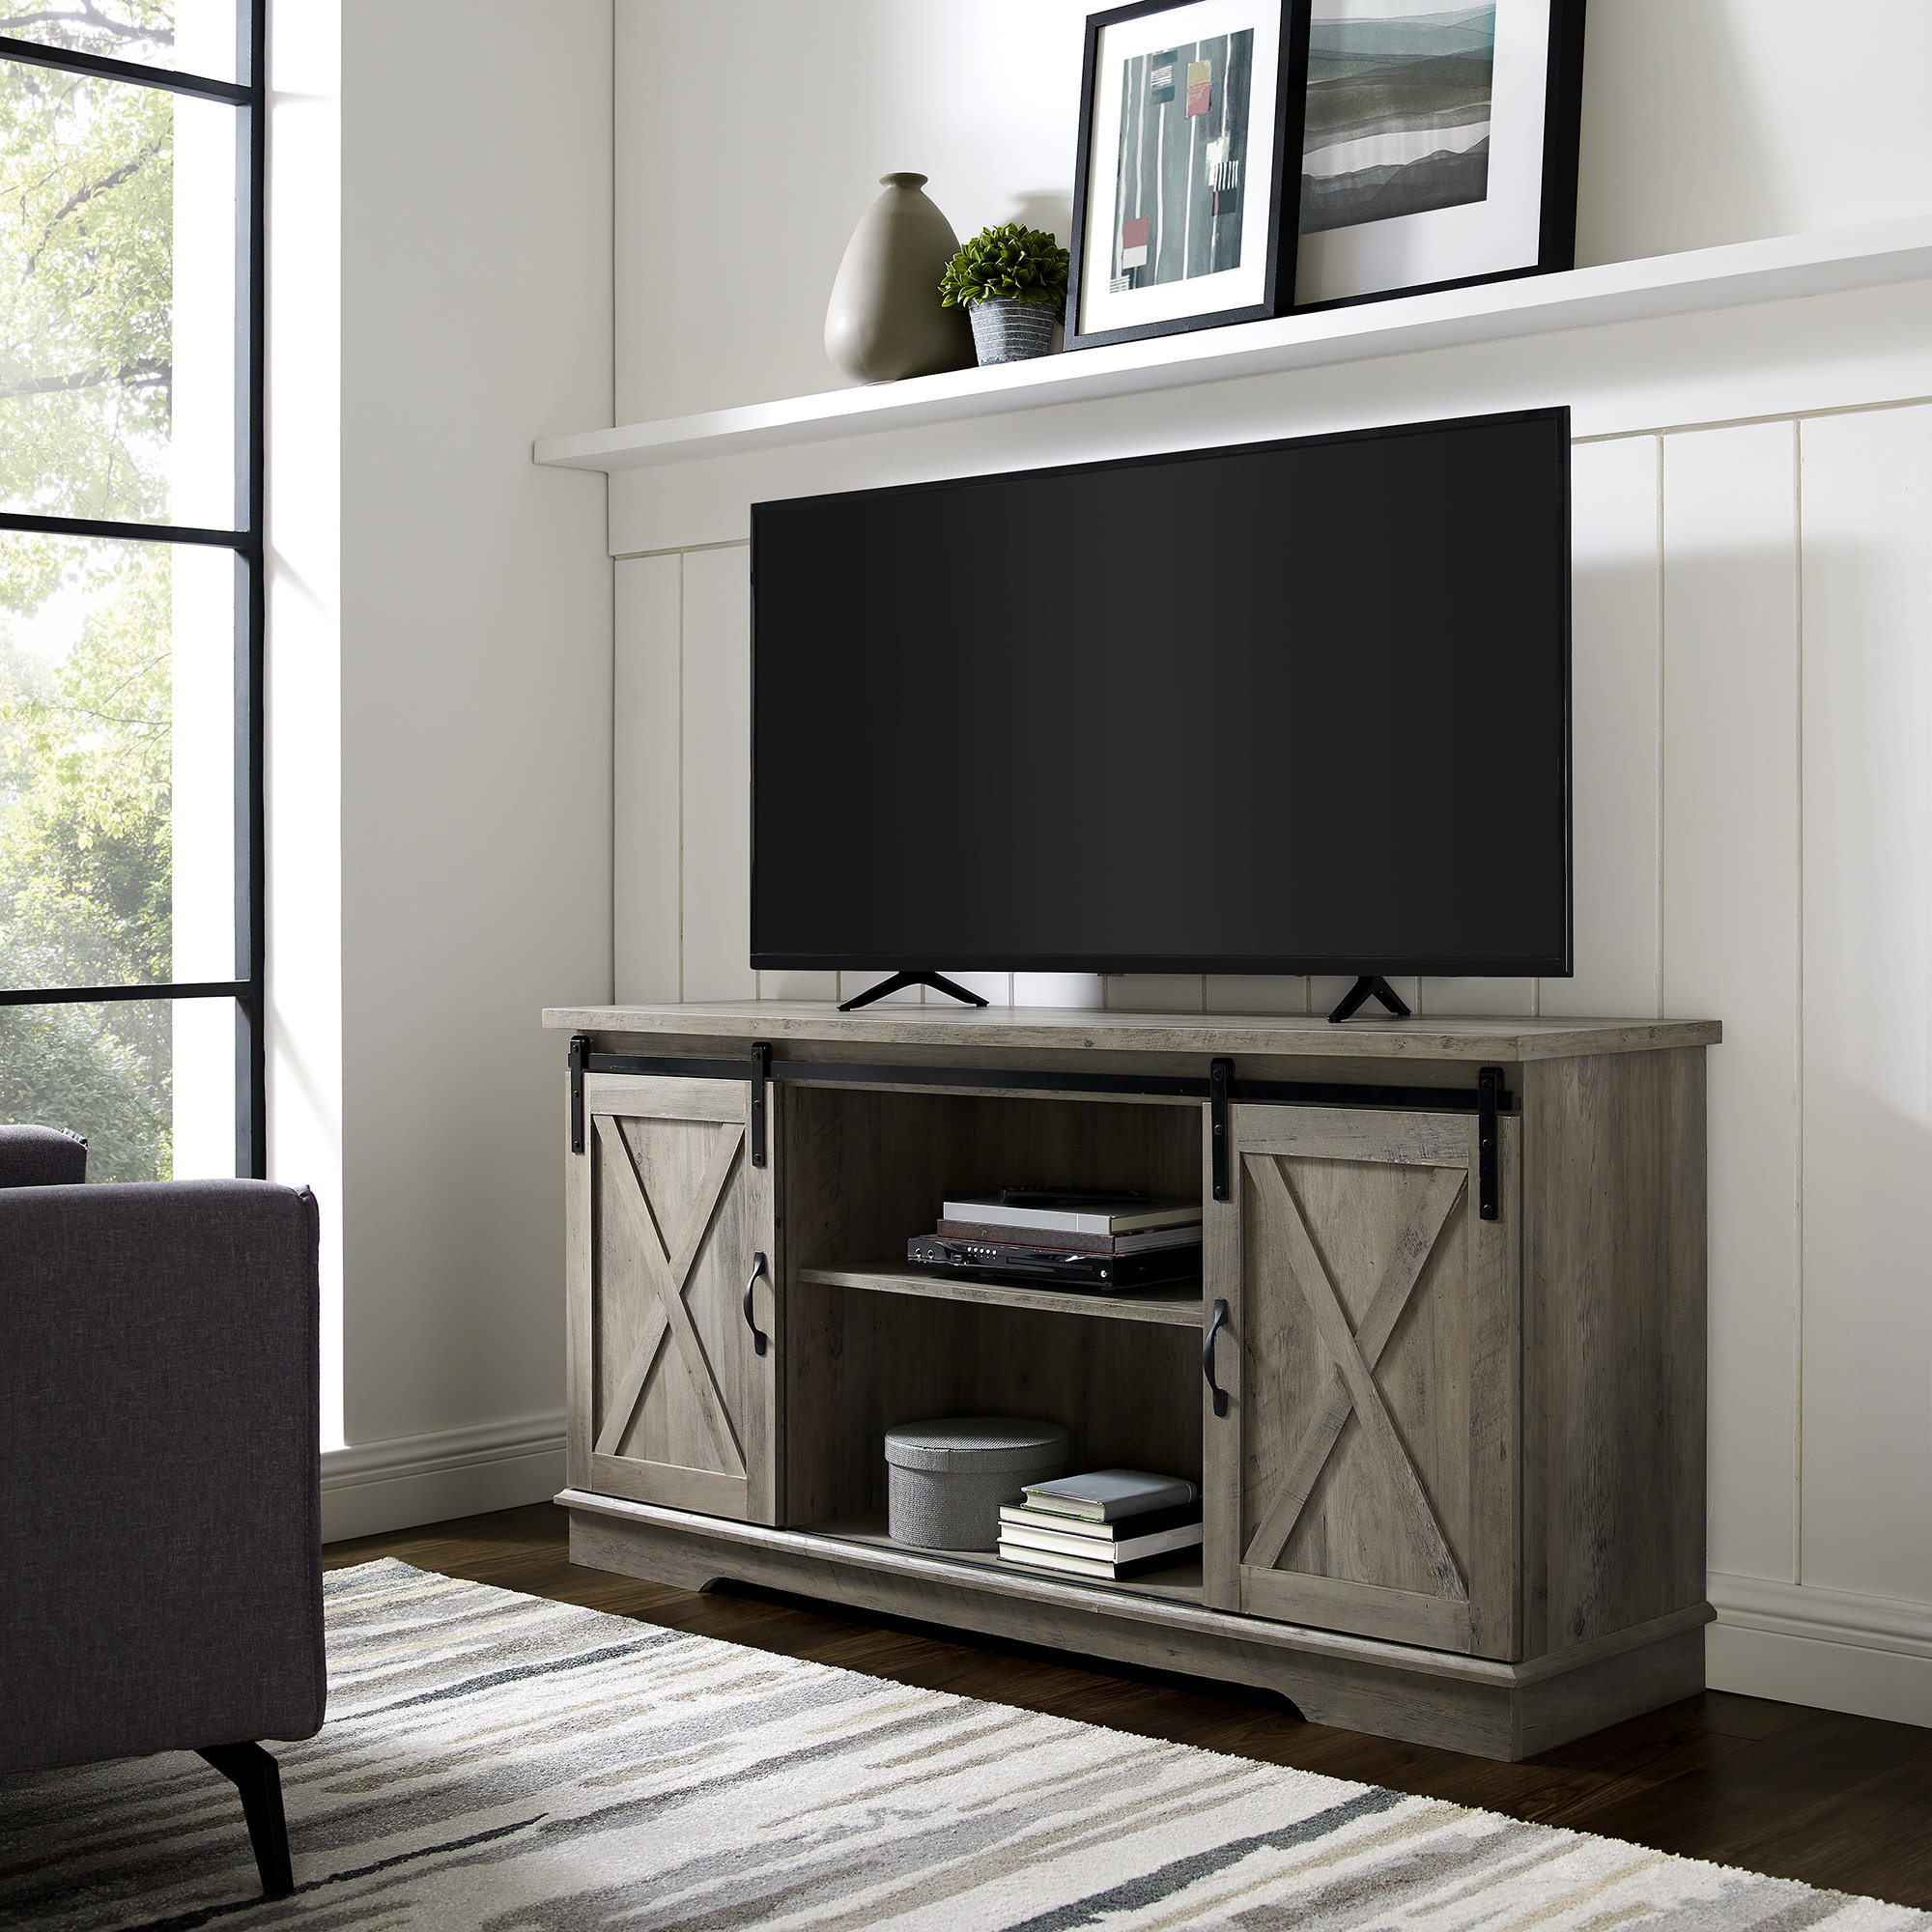 End Table And Tv Stand Set | Wayfair Inside Combs 63 Inch Tv Stands (Gallery 14 of 20)